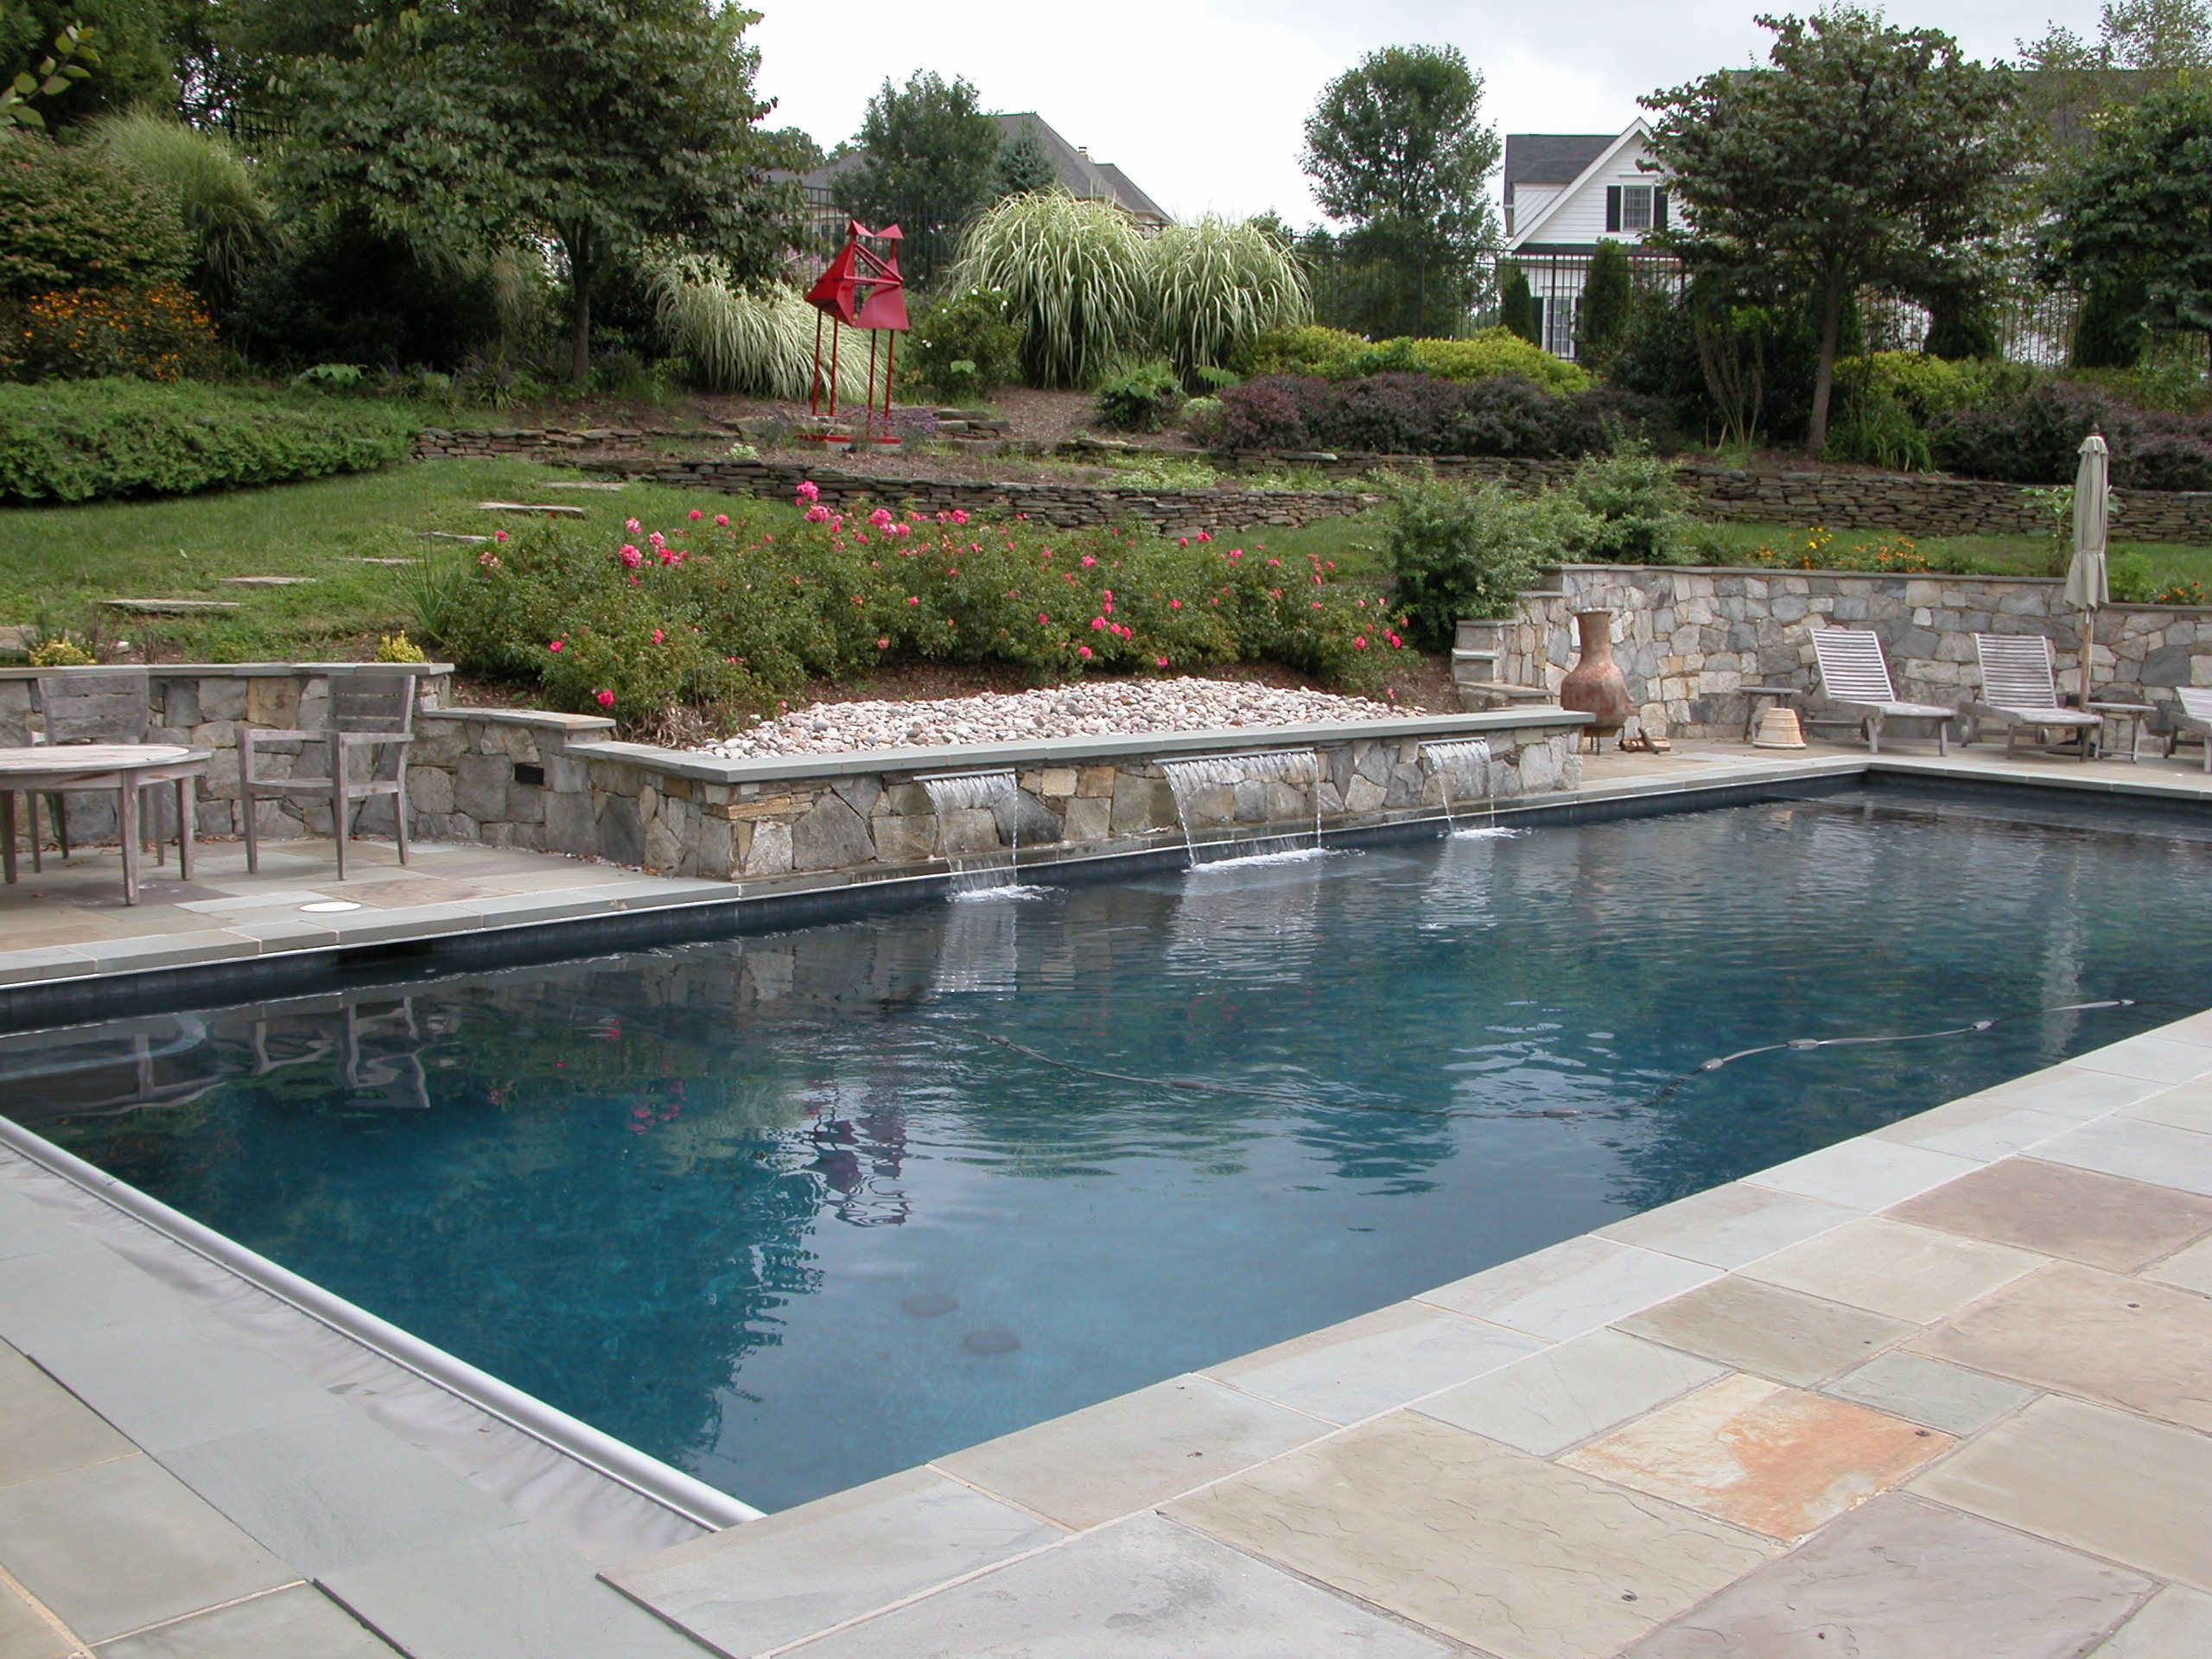 Pool Ideas On A Budget: Pool Landscape Ideas On A Budget